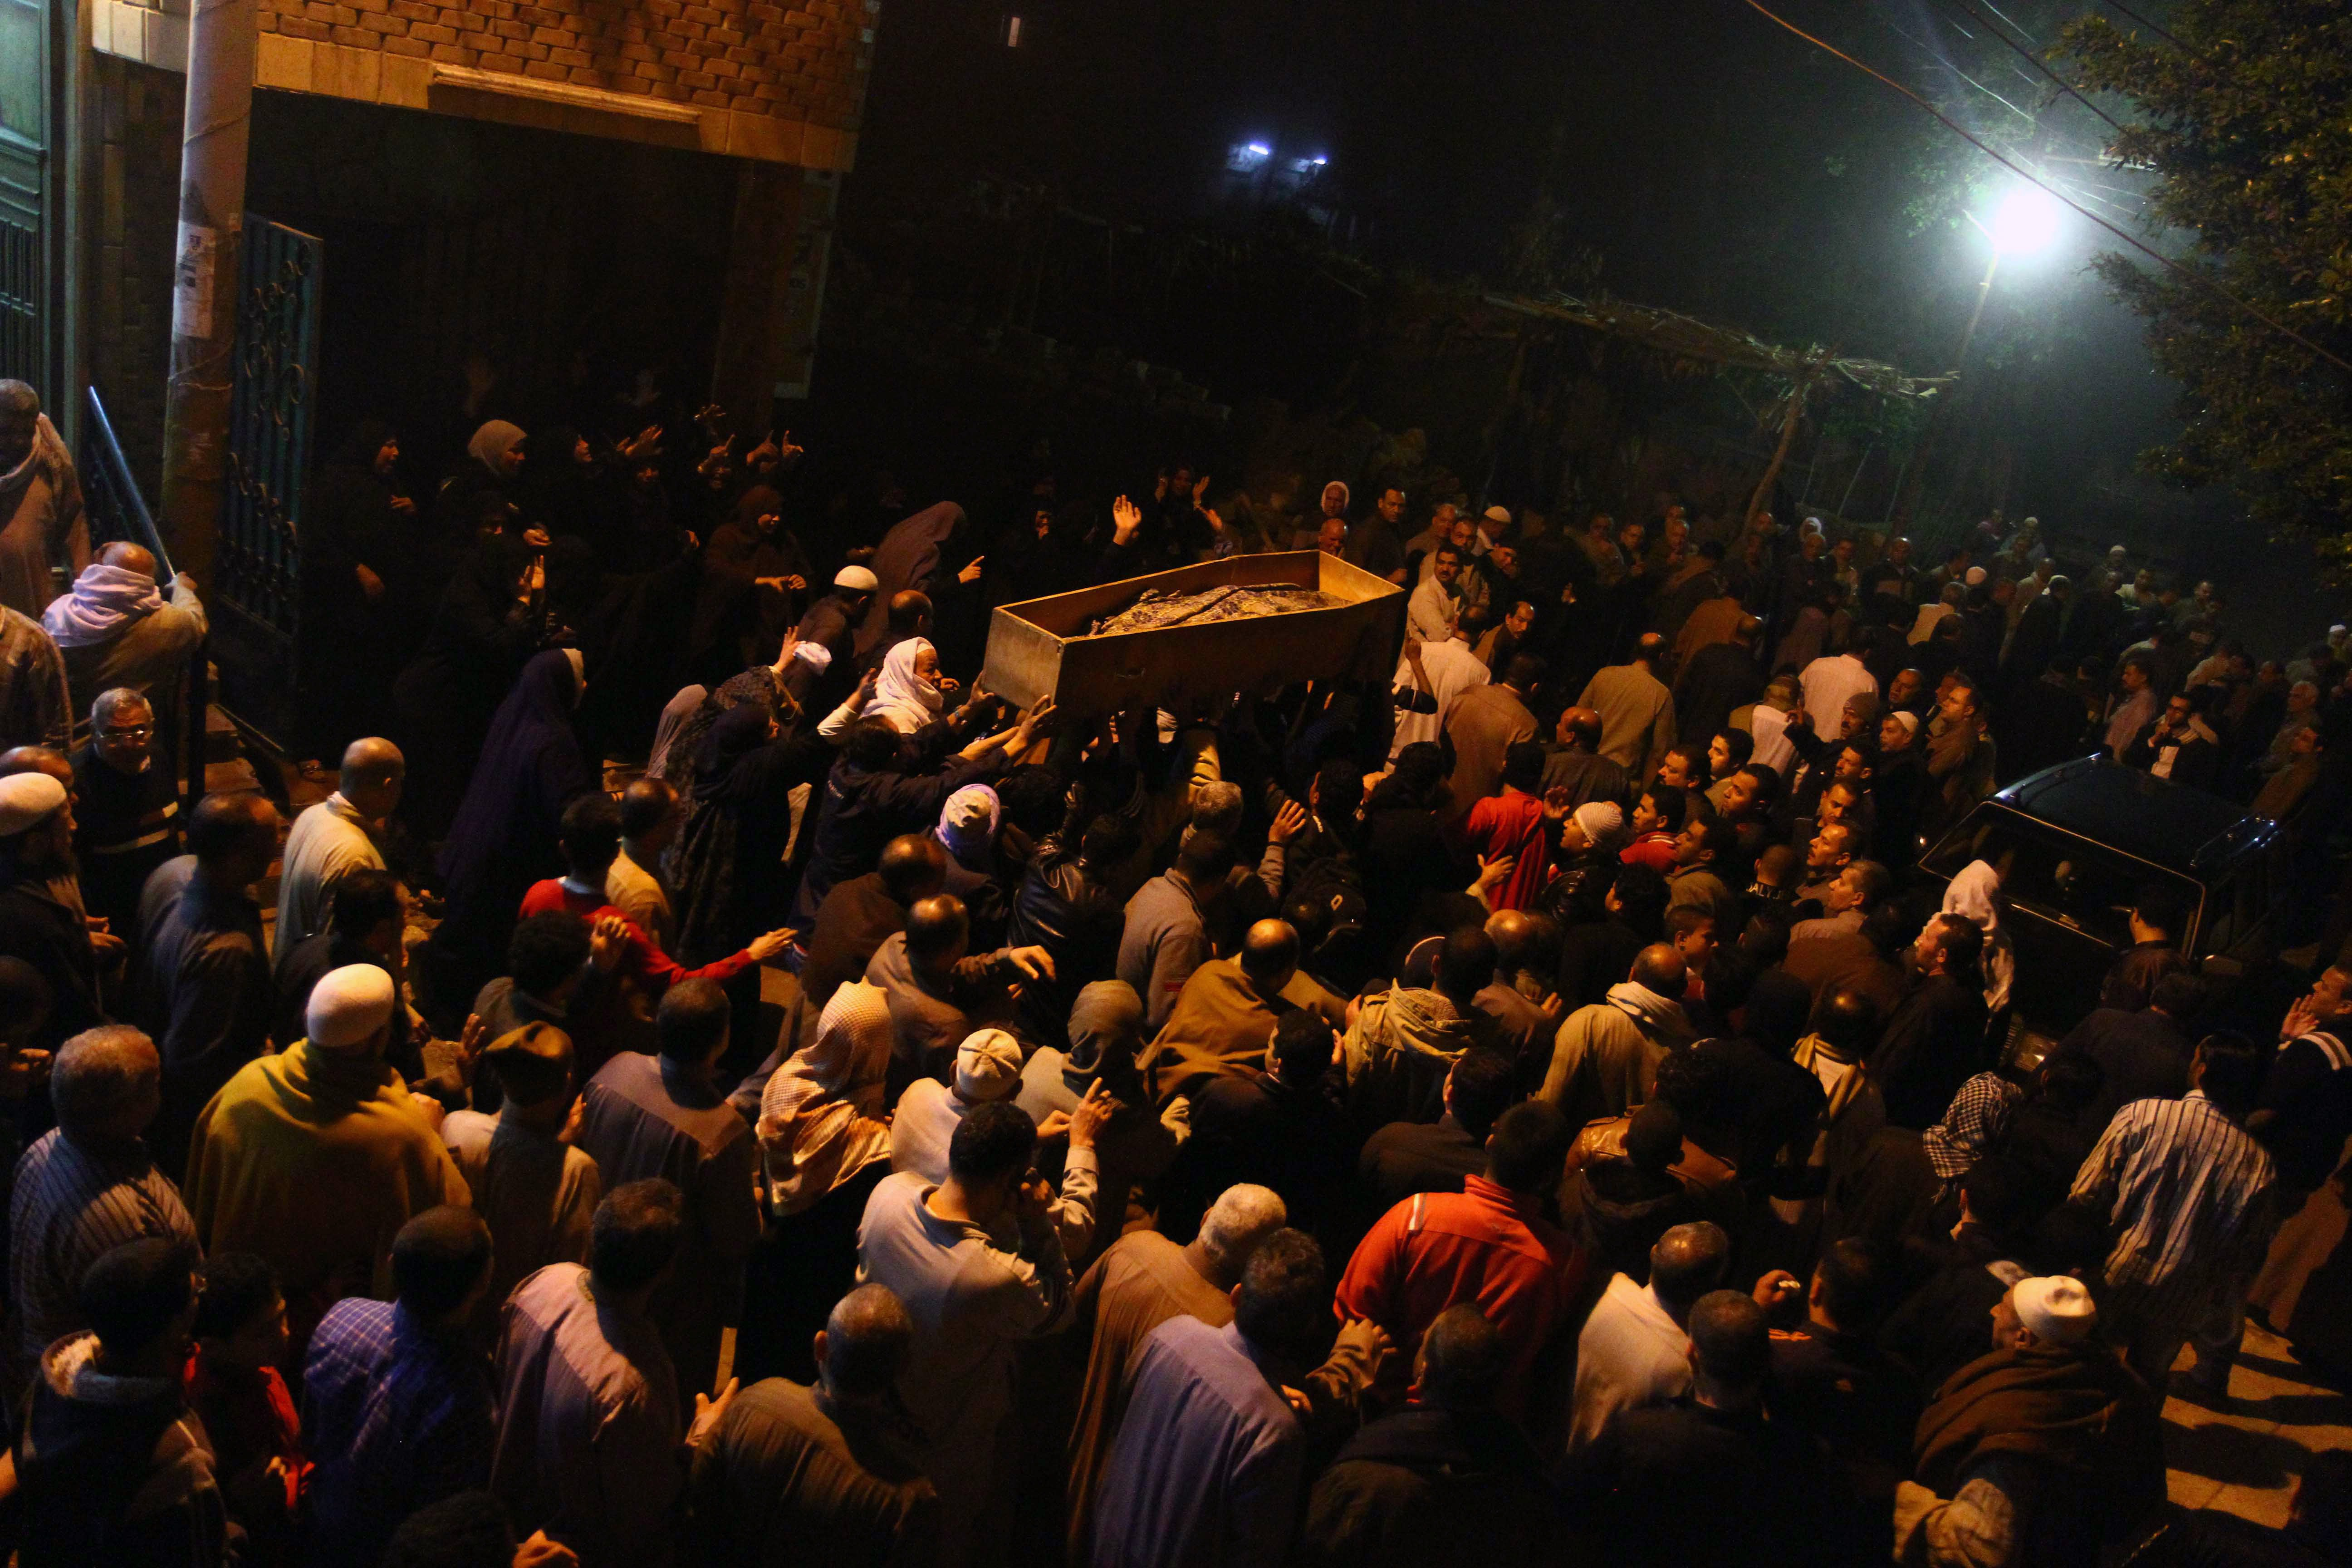 Mourners carry the coffin of Egyptian journalist Mayada Ashraf during her funeral in Estanhaa village at El-Monofia, 70 km north of Cairo, on March 29, 2014. Al-Dustour, a privately-owned newspaper, said on its website that its journalist Mayada was killed while covering clashes in the northern Cairo neighbourhood of Ein Shams.  (AFP PHOTO / AHMED MAHMOUD)